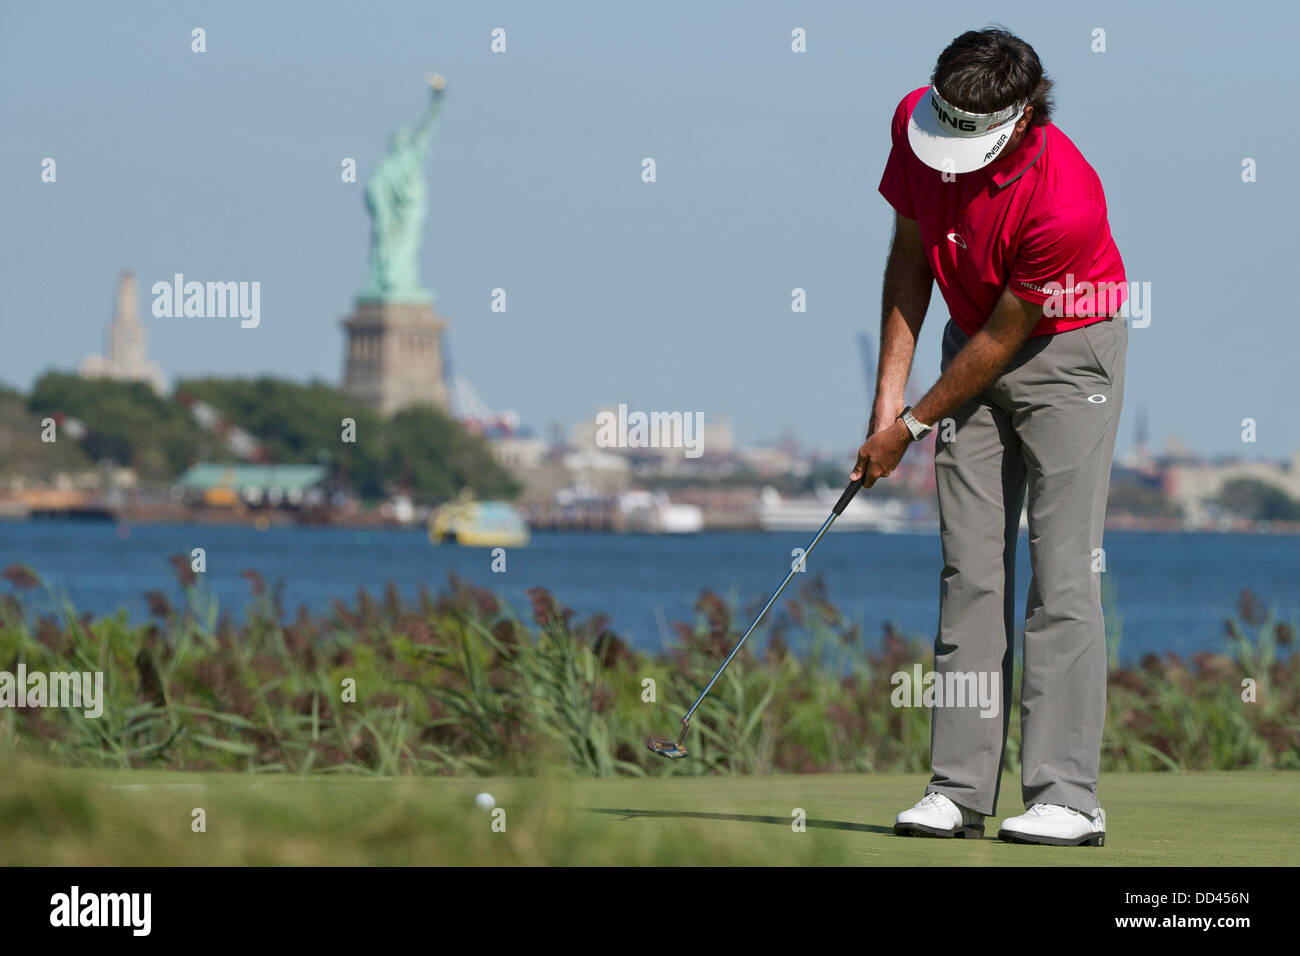 Jersey City, New Jersey, USA. 25th Aug, 2013. August 25, 2013: Bubba Watson (USA) puttsl on the 14th green in front Stock Photo